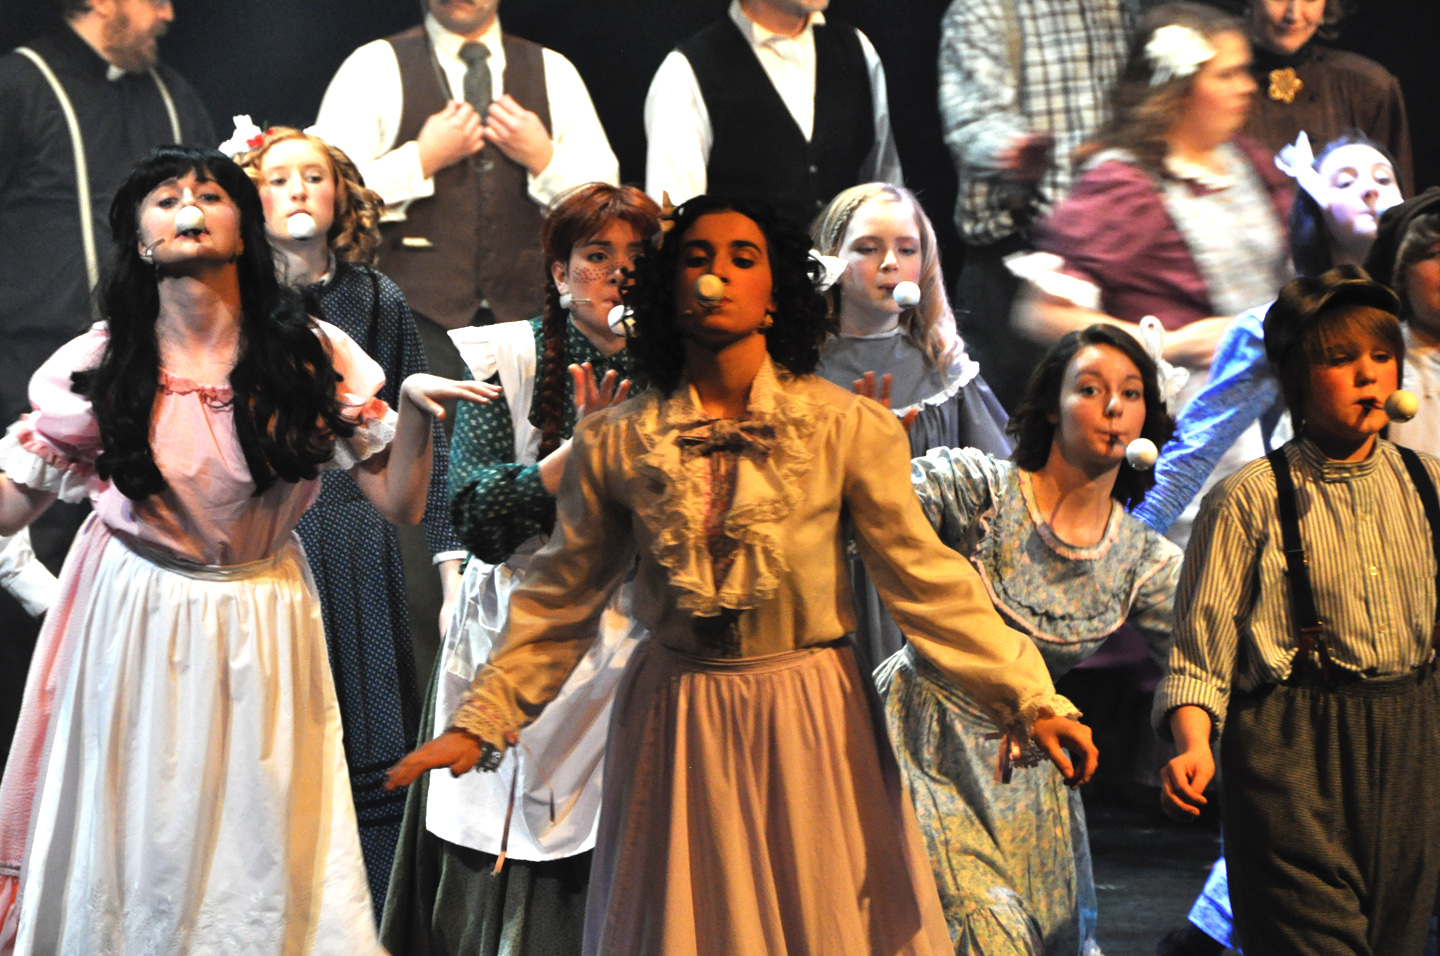 anne of green gables_act1  208